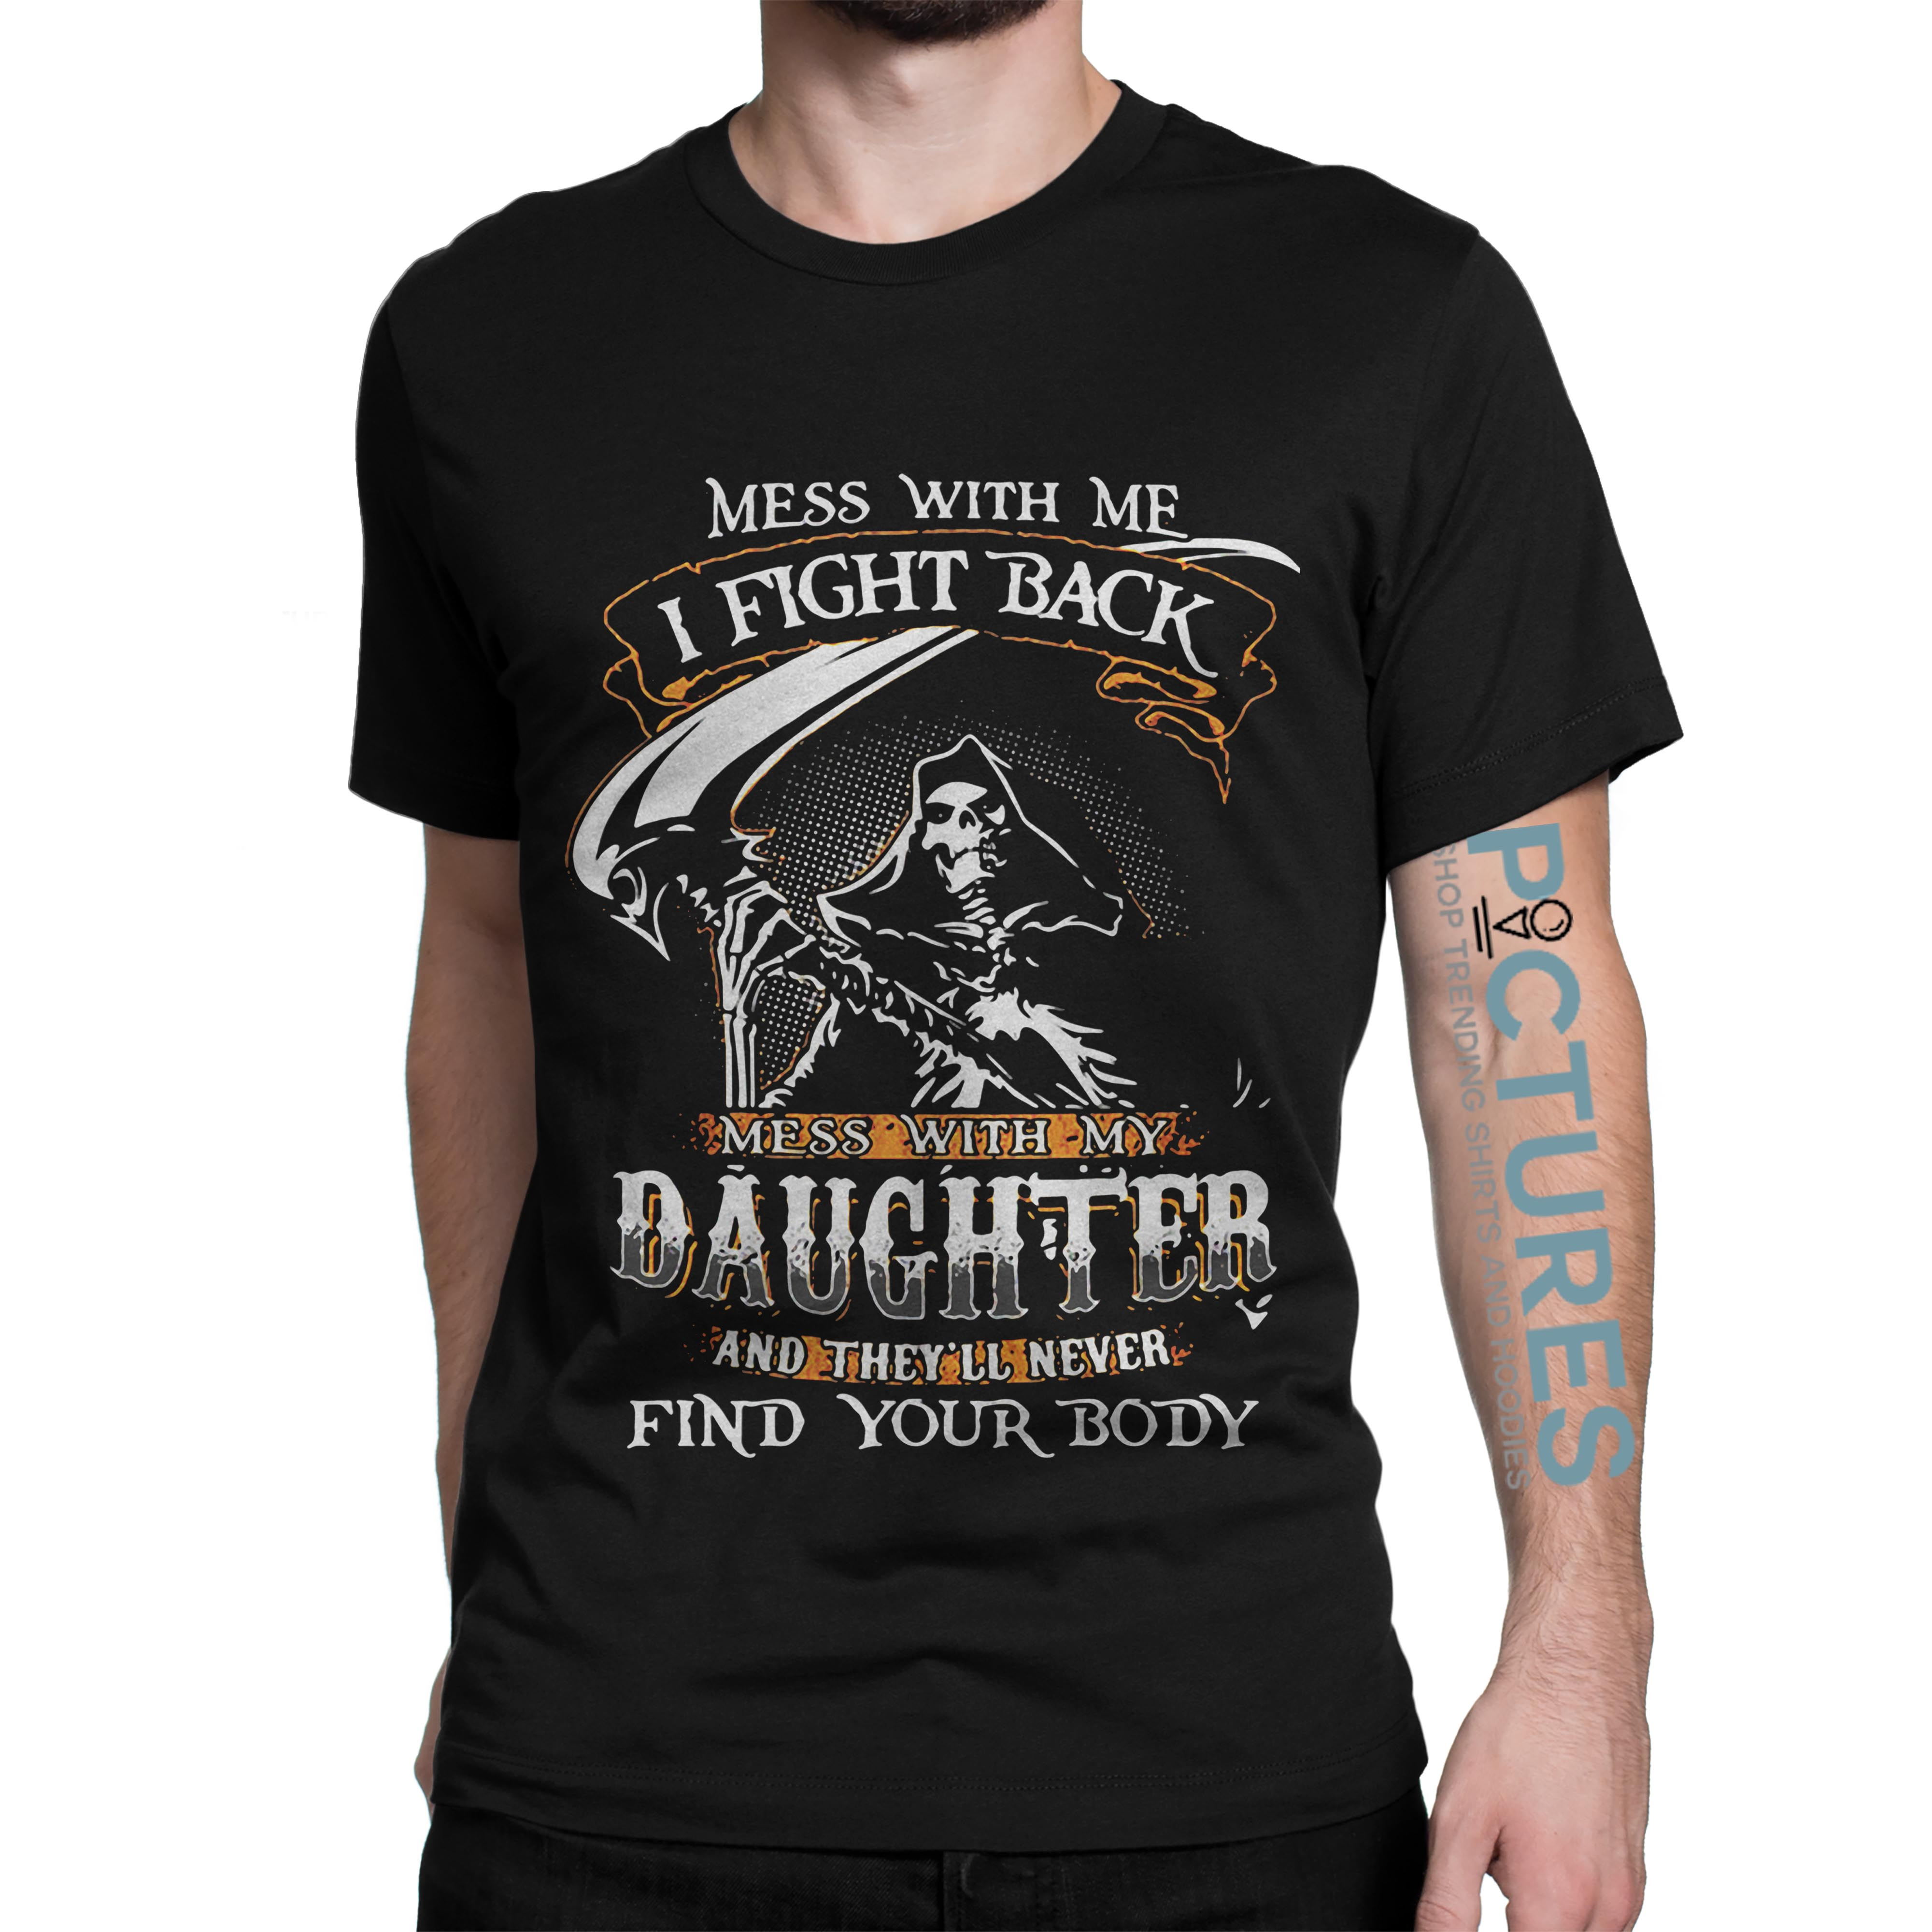 Mess with my daughter and they'll never find your body shirt